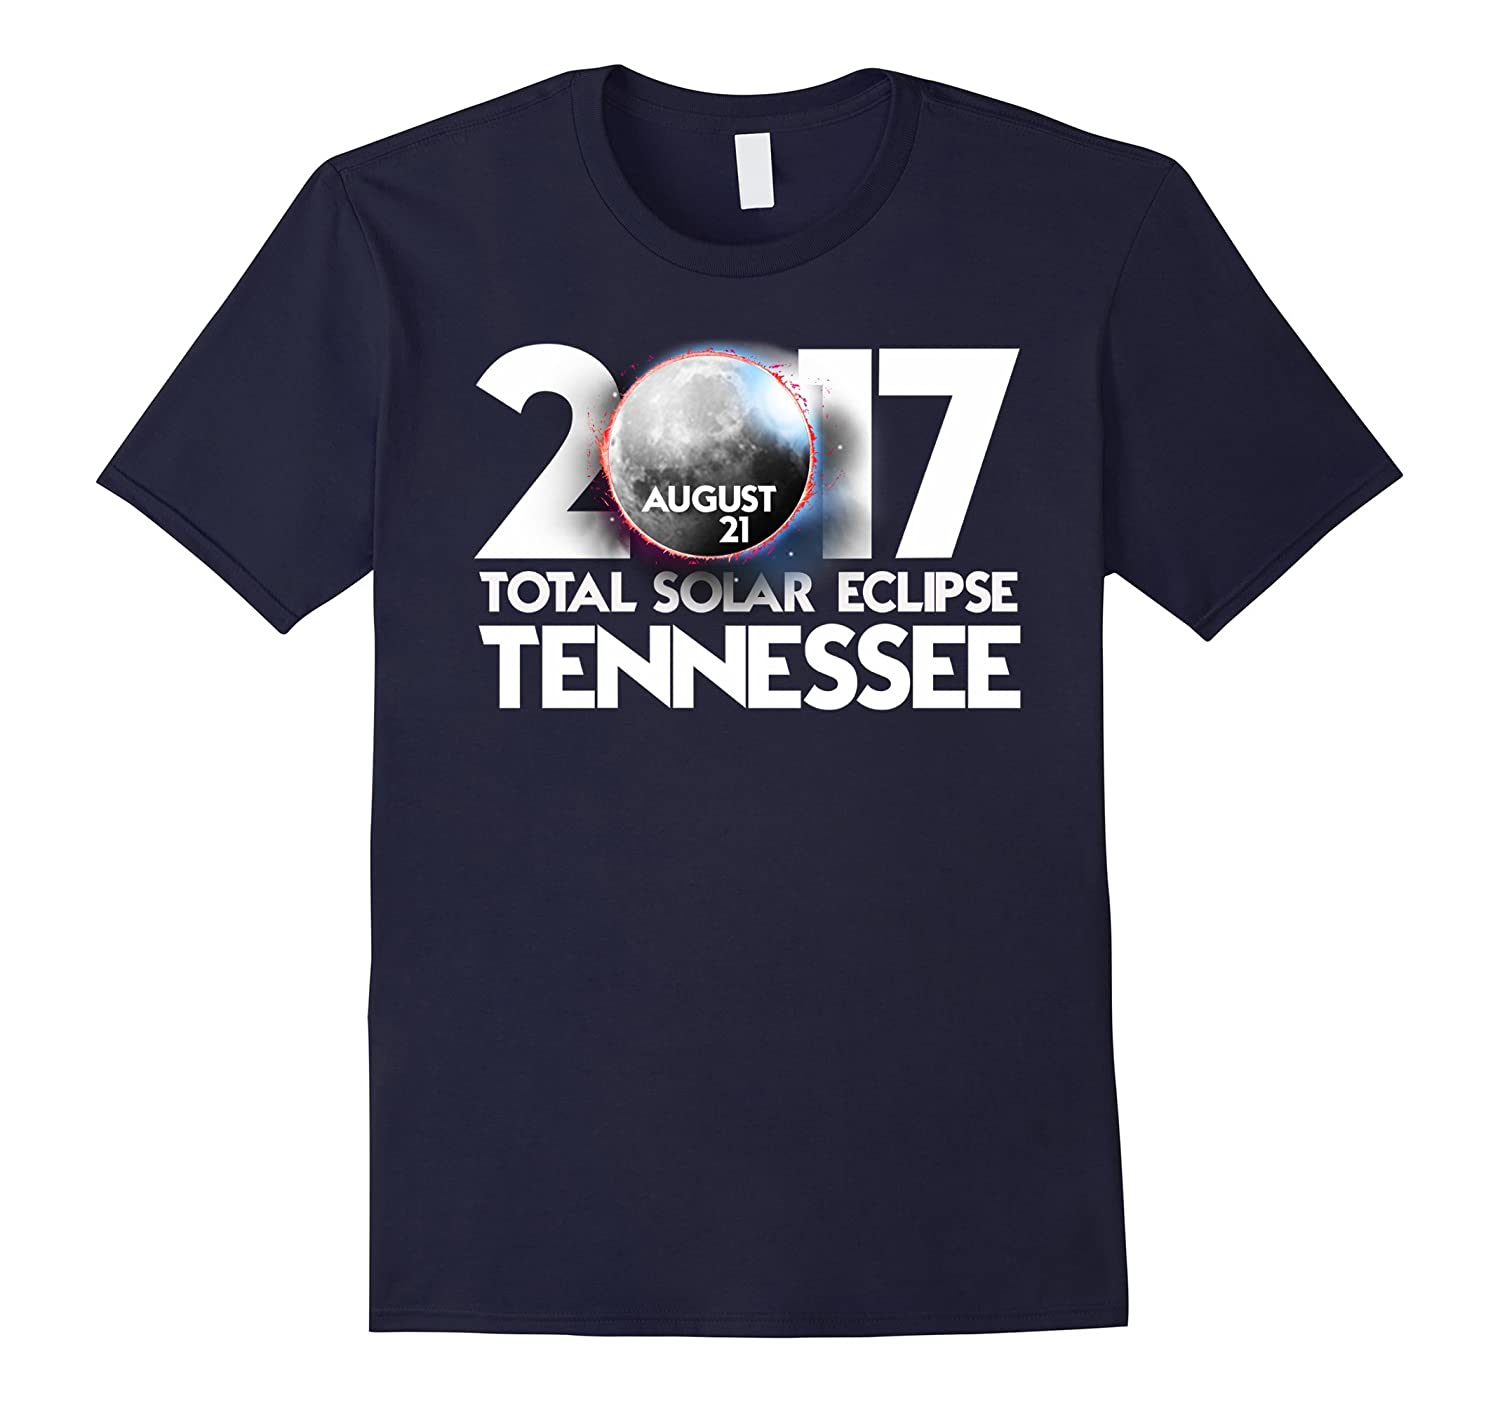 Total Solar Eclipse Tennessee 2017 Totality T shirt-BN